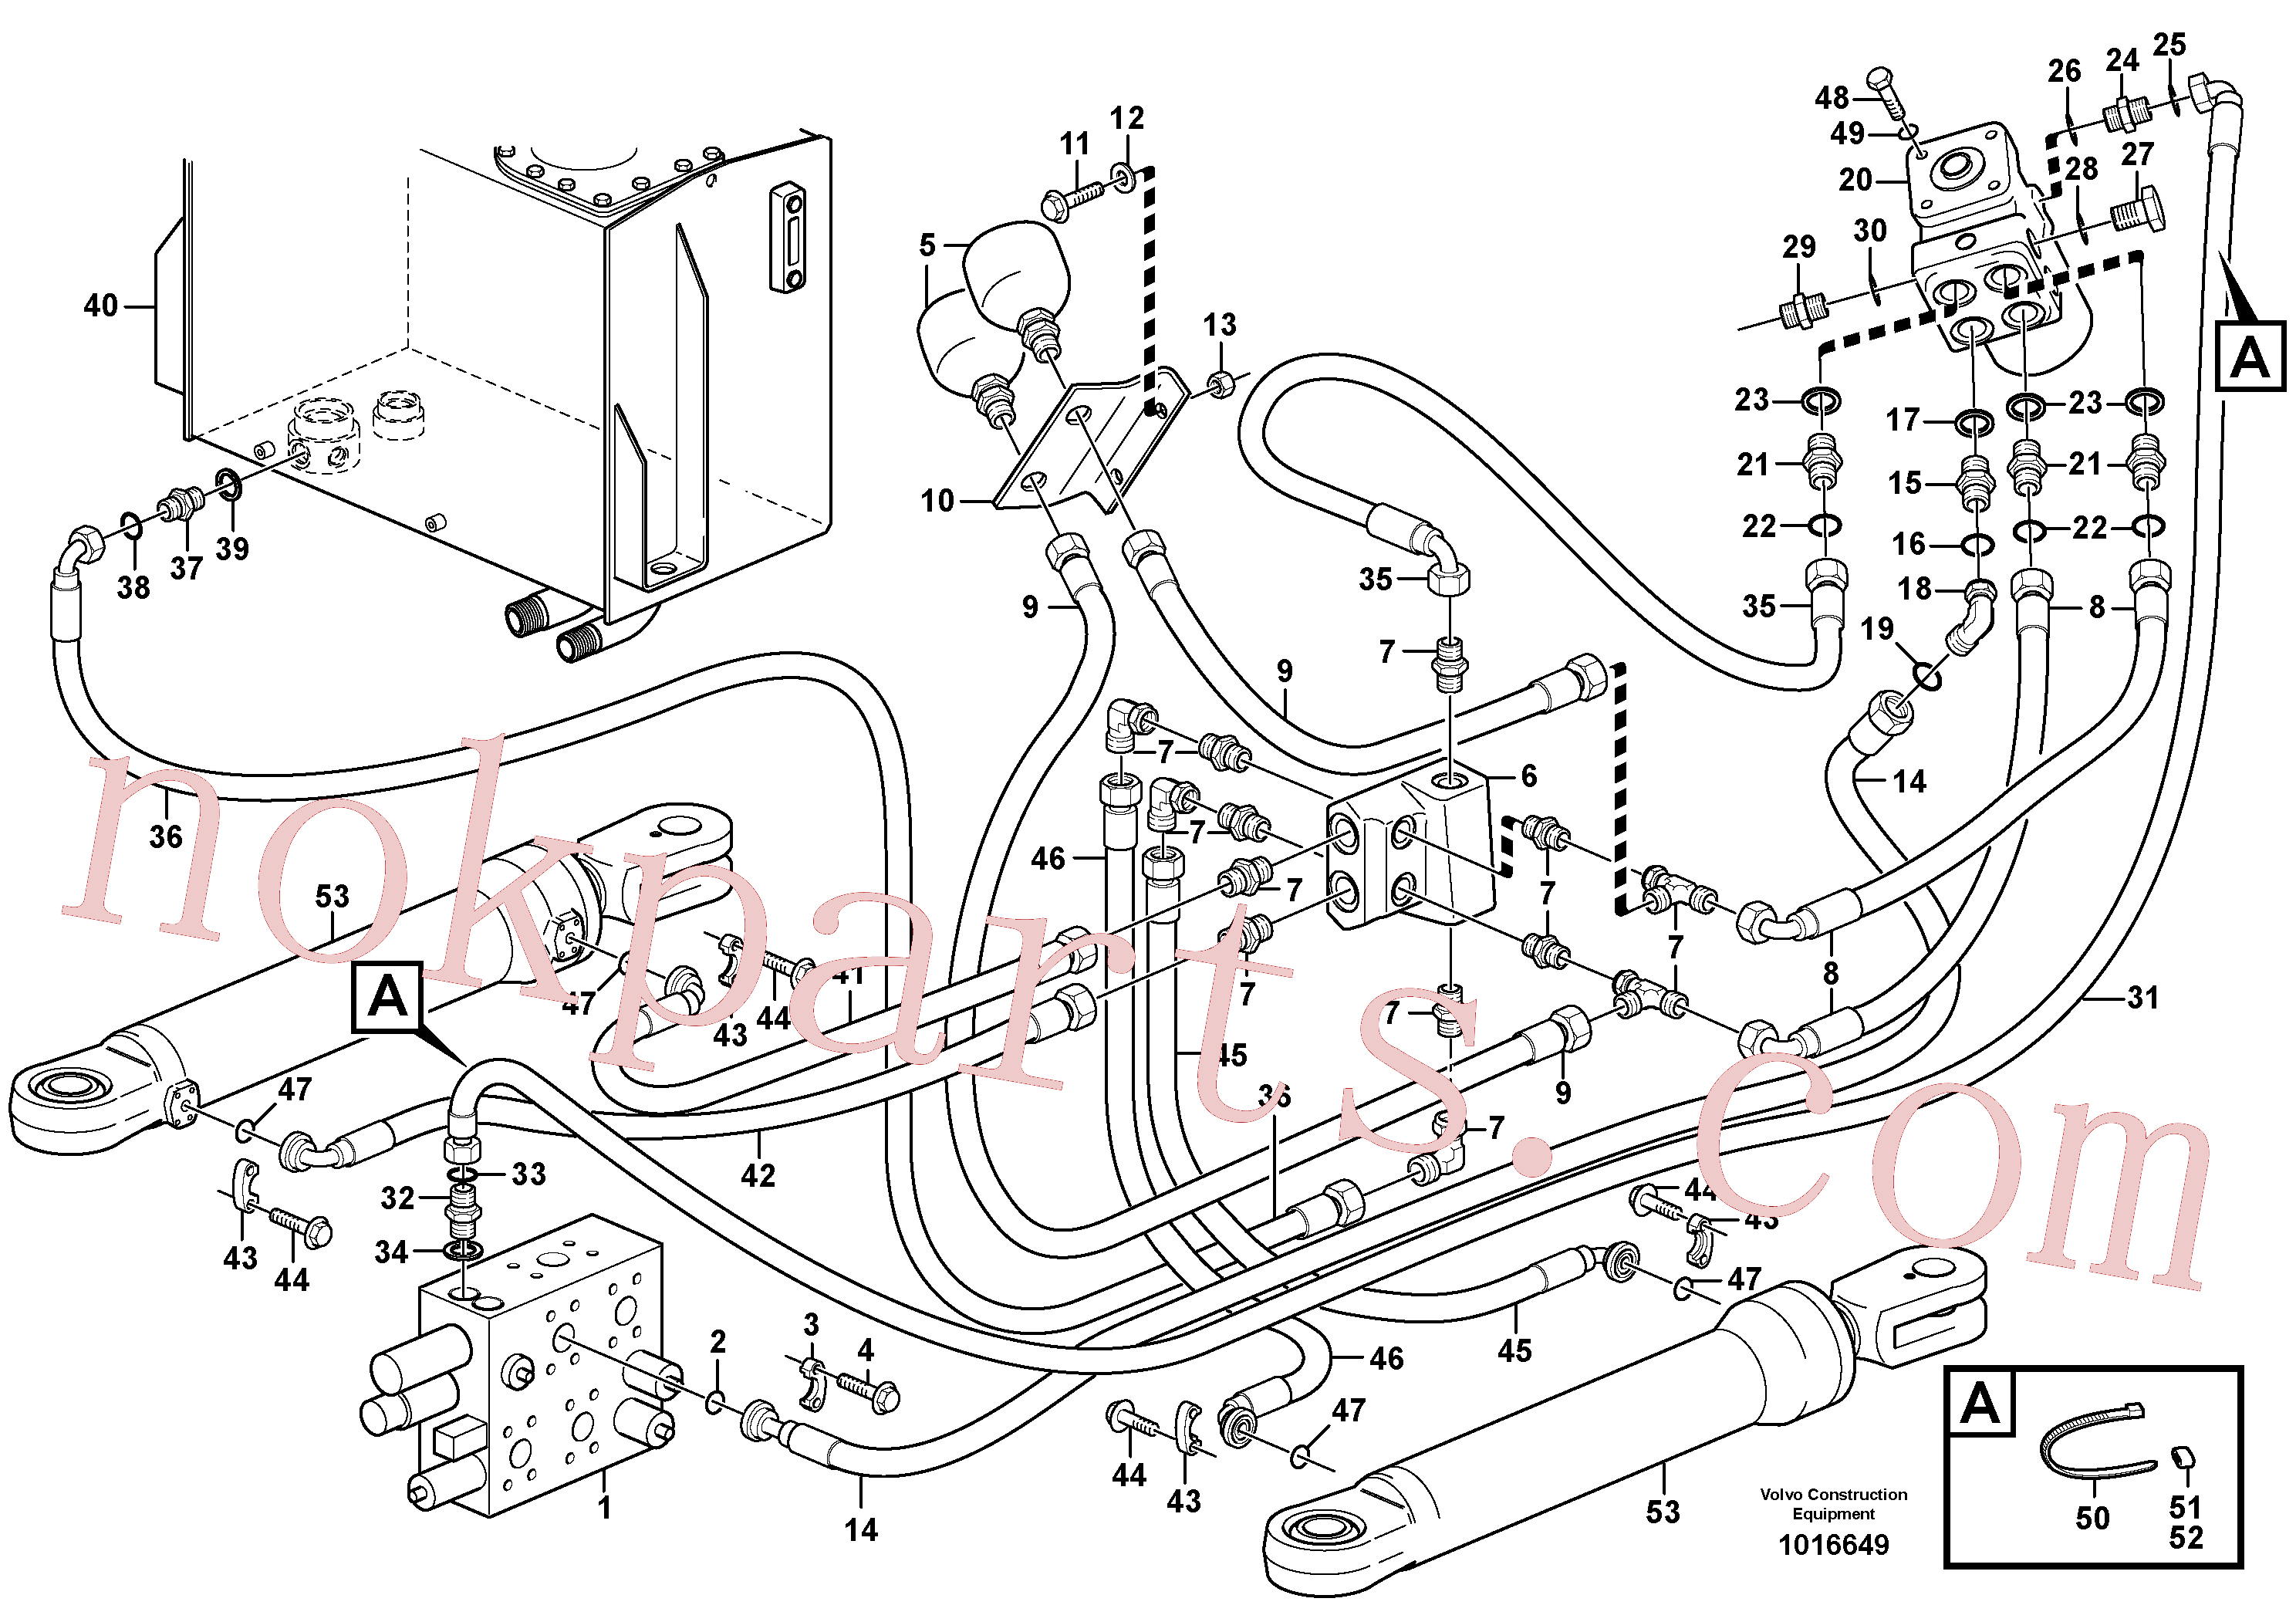 VOE14370253 for Volvo Steering system, pressure and return lines(1016649 assembly)